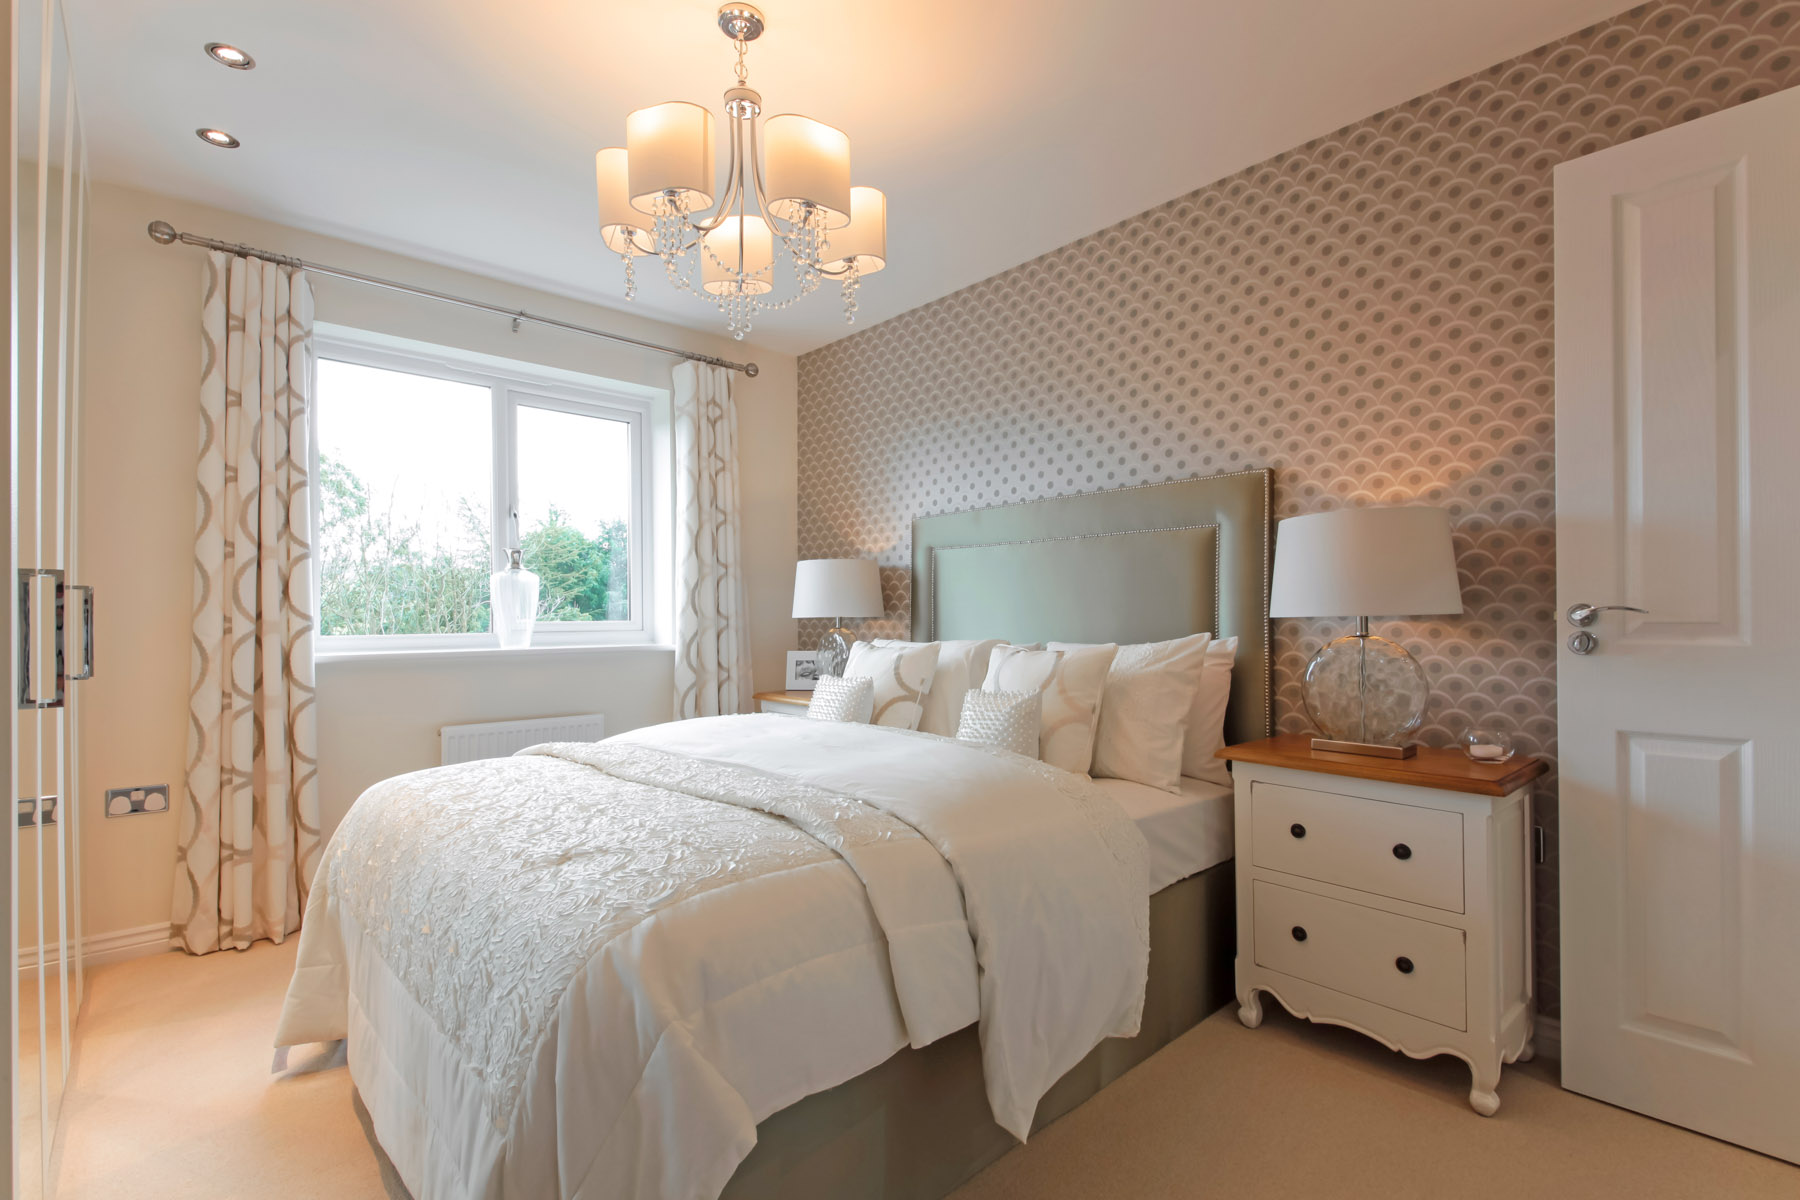 014_DMV_Lydford_Master_Bedroom